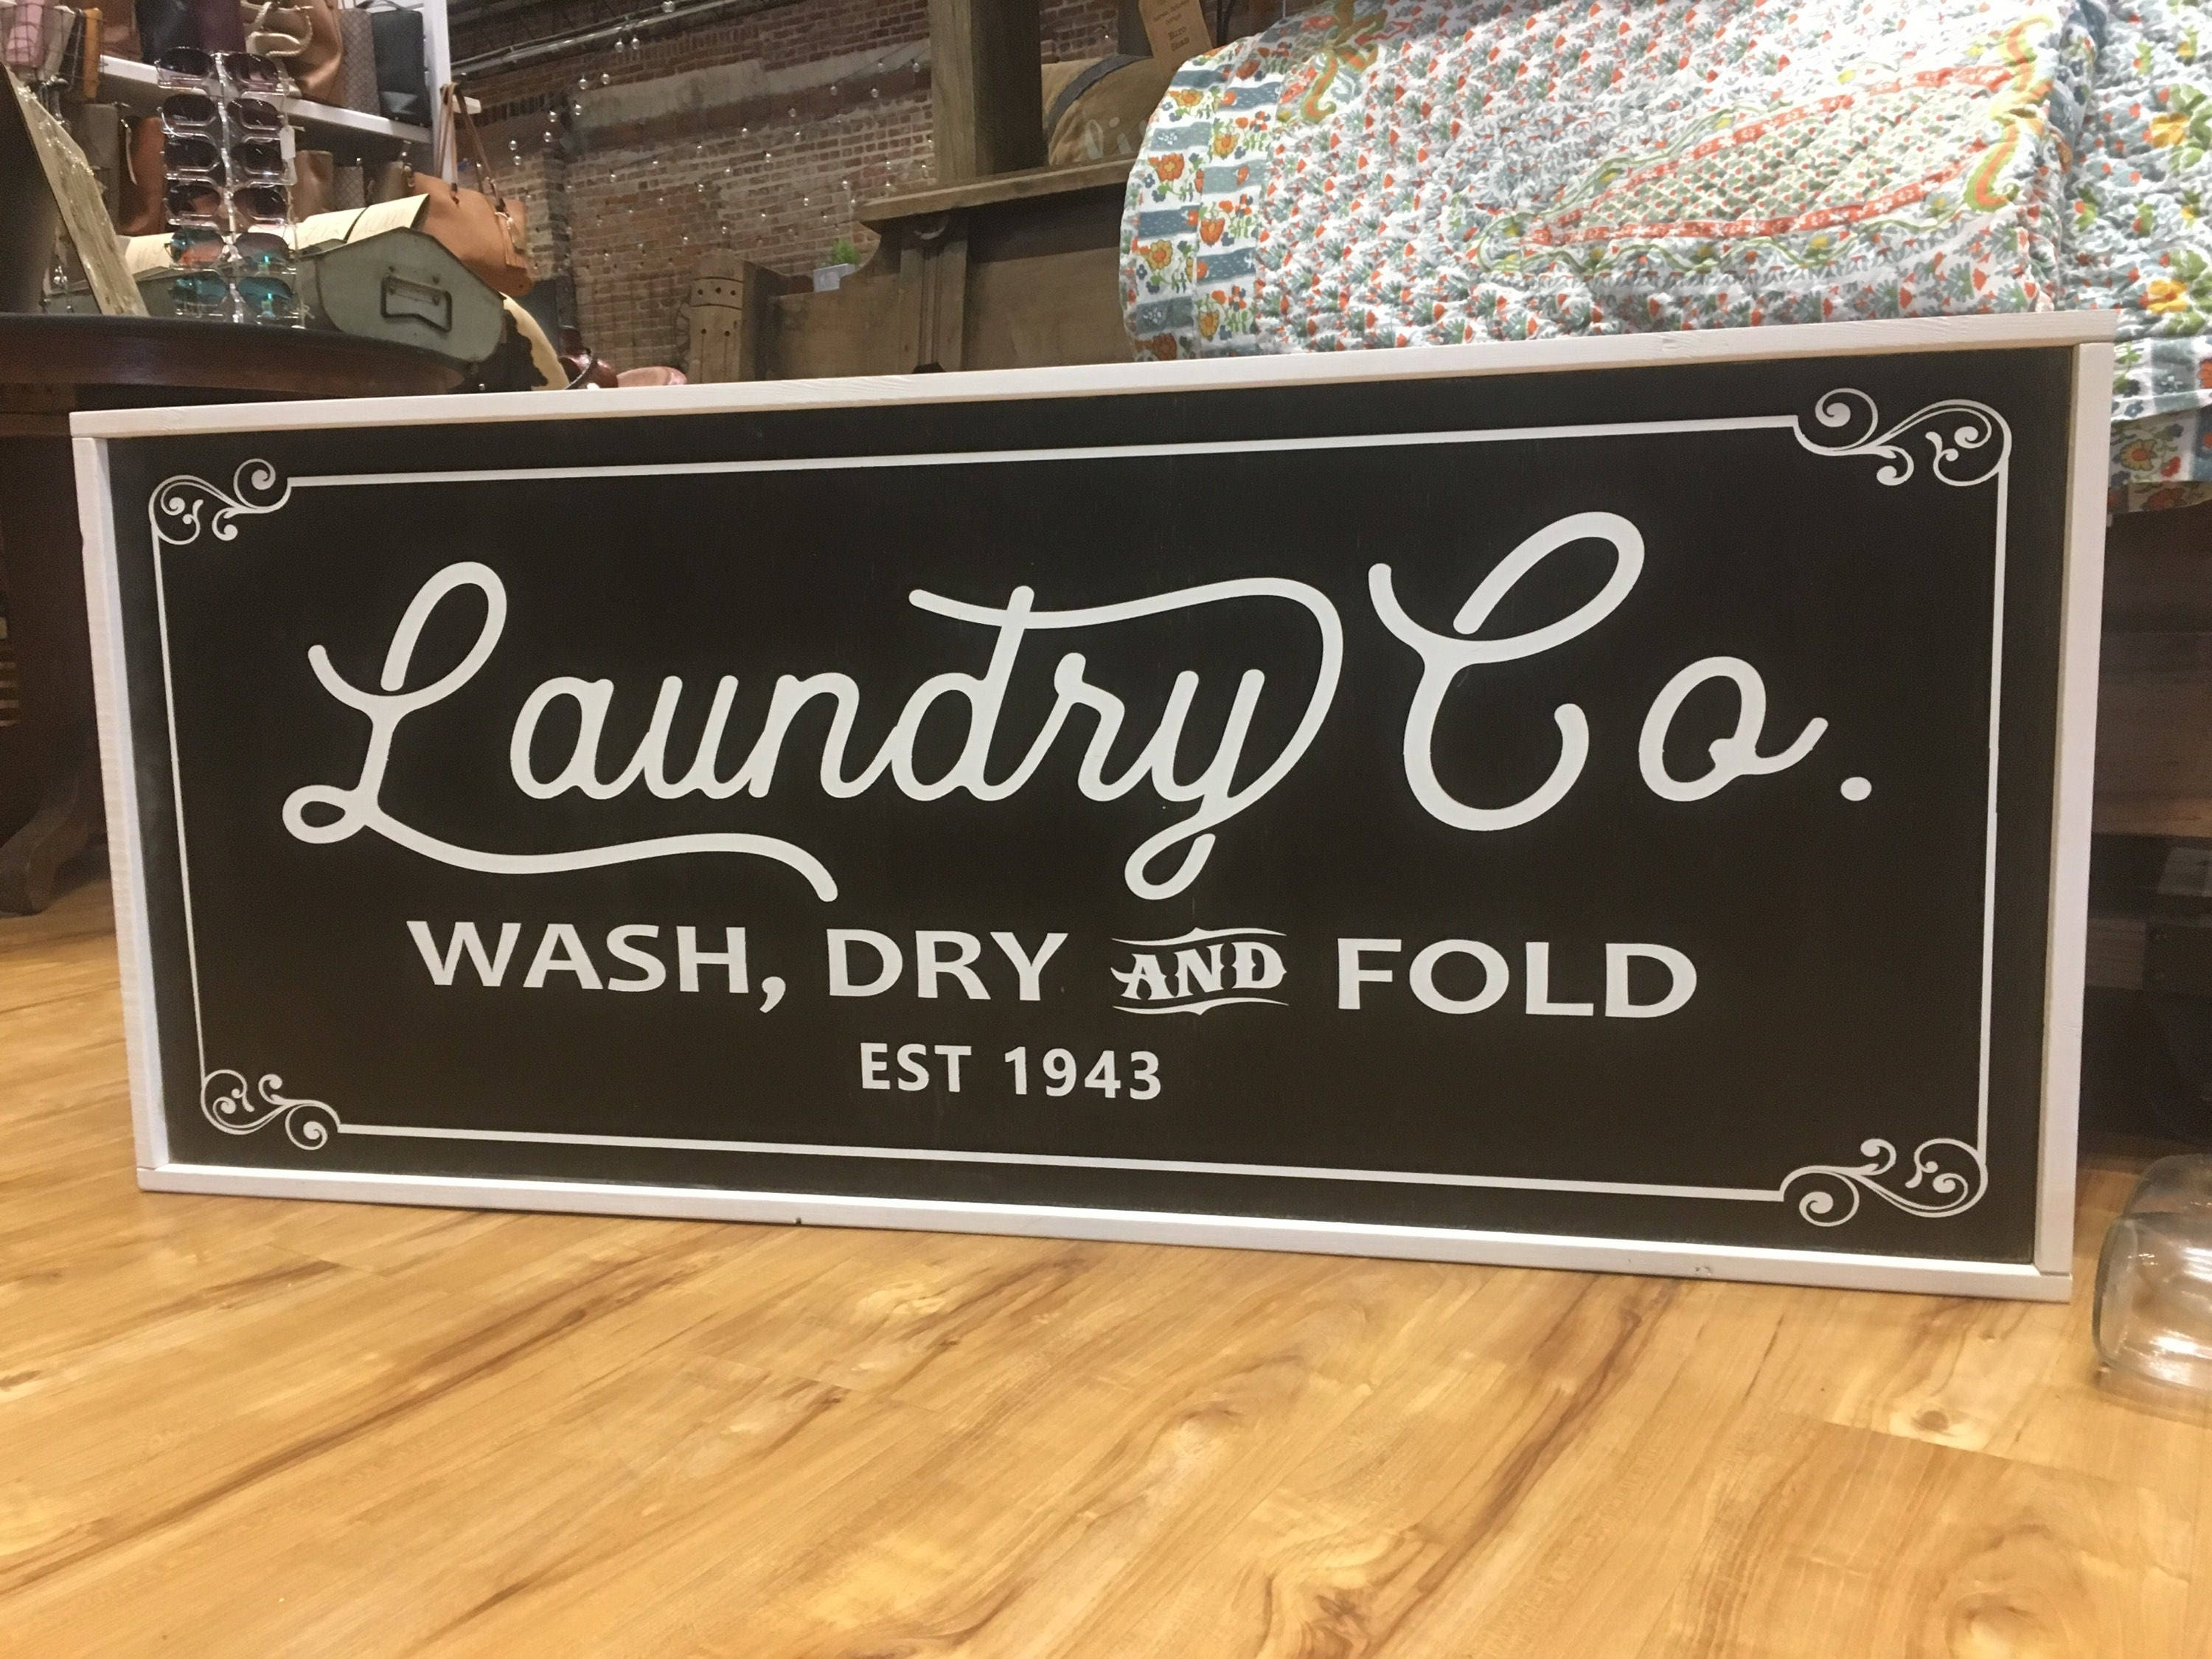 Laundry And Co Sign Laundry Cowood Sign 13X32  Farmhouse  Modern  Home Decor